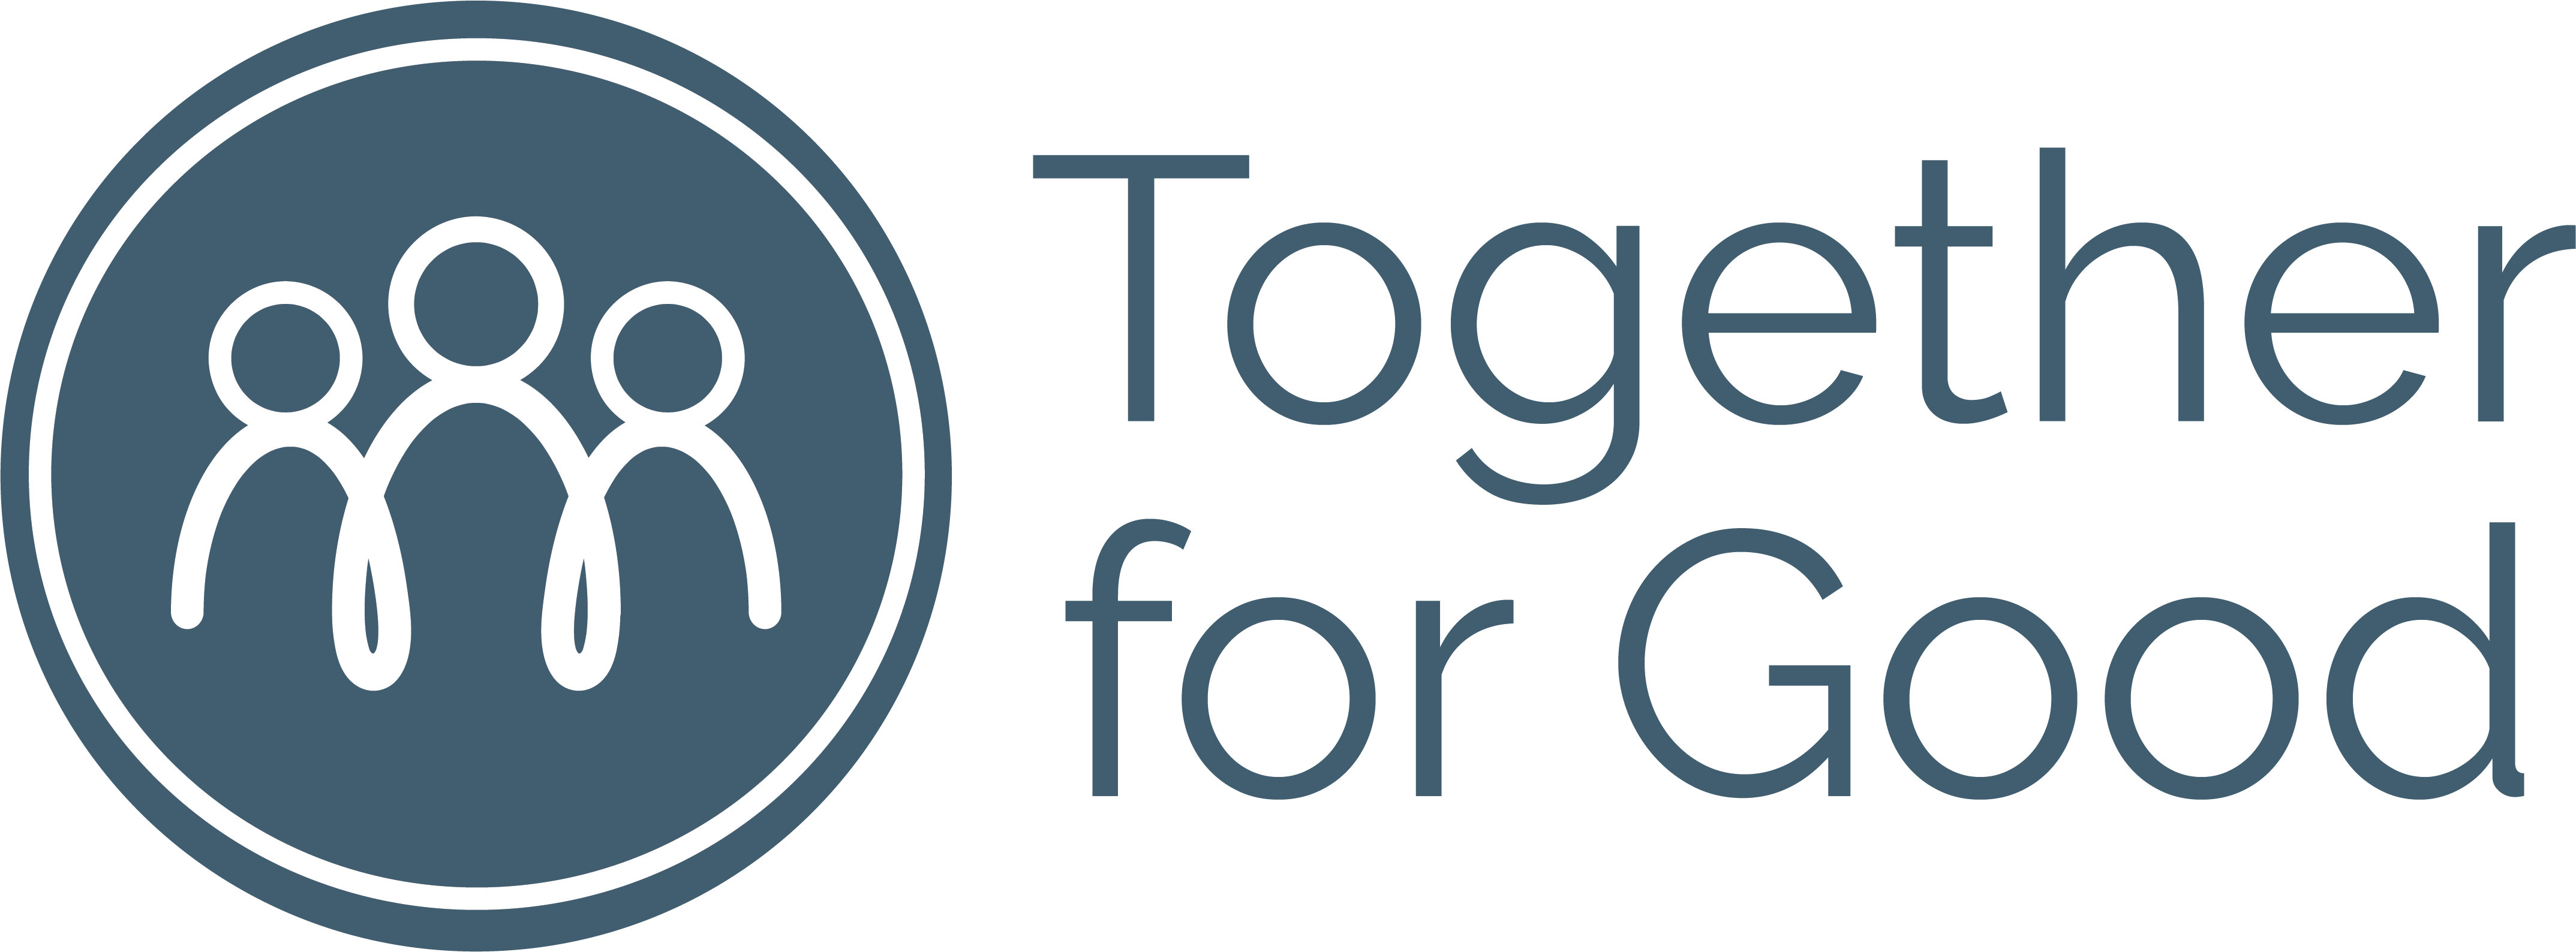 Together For Good Logo